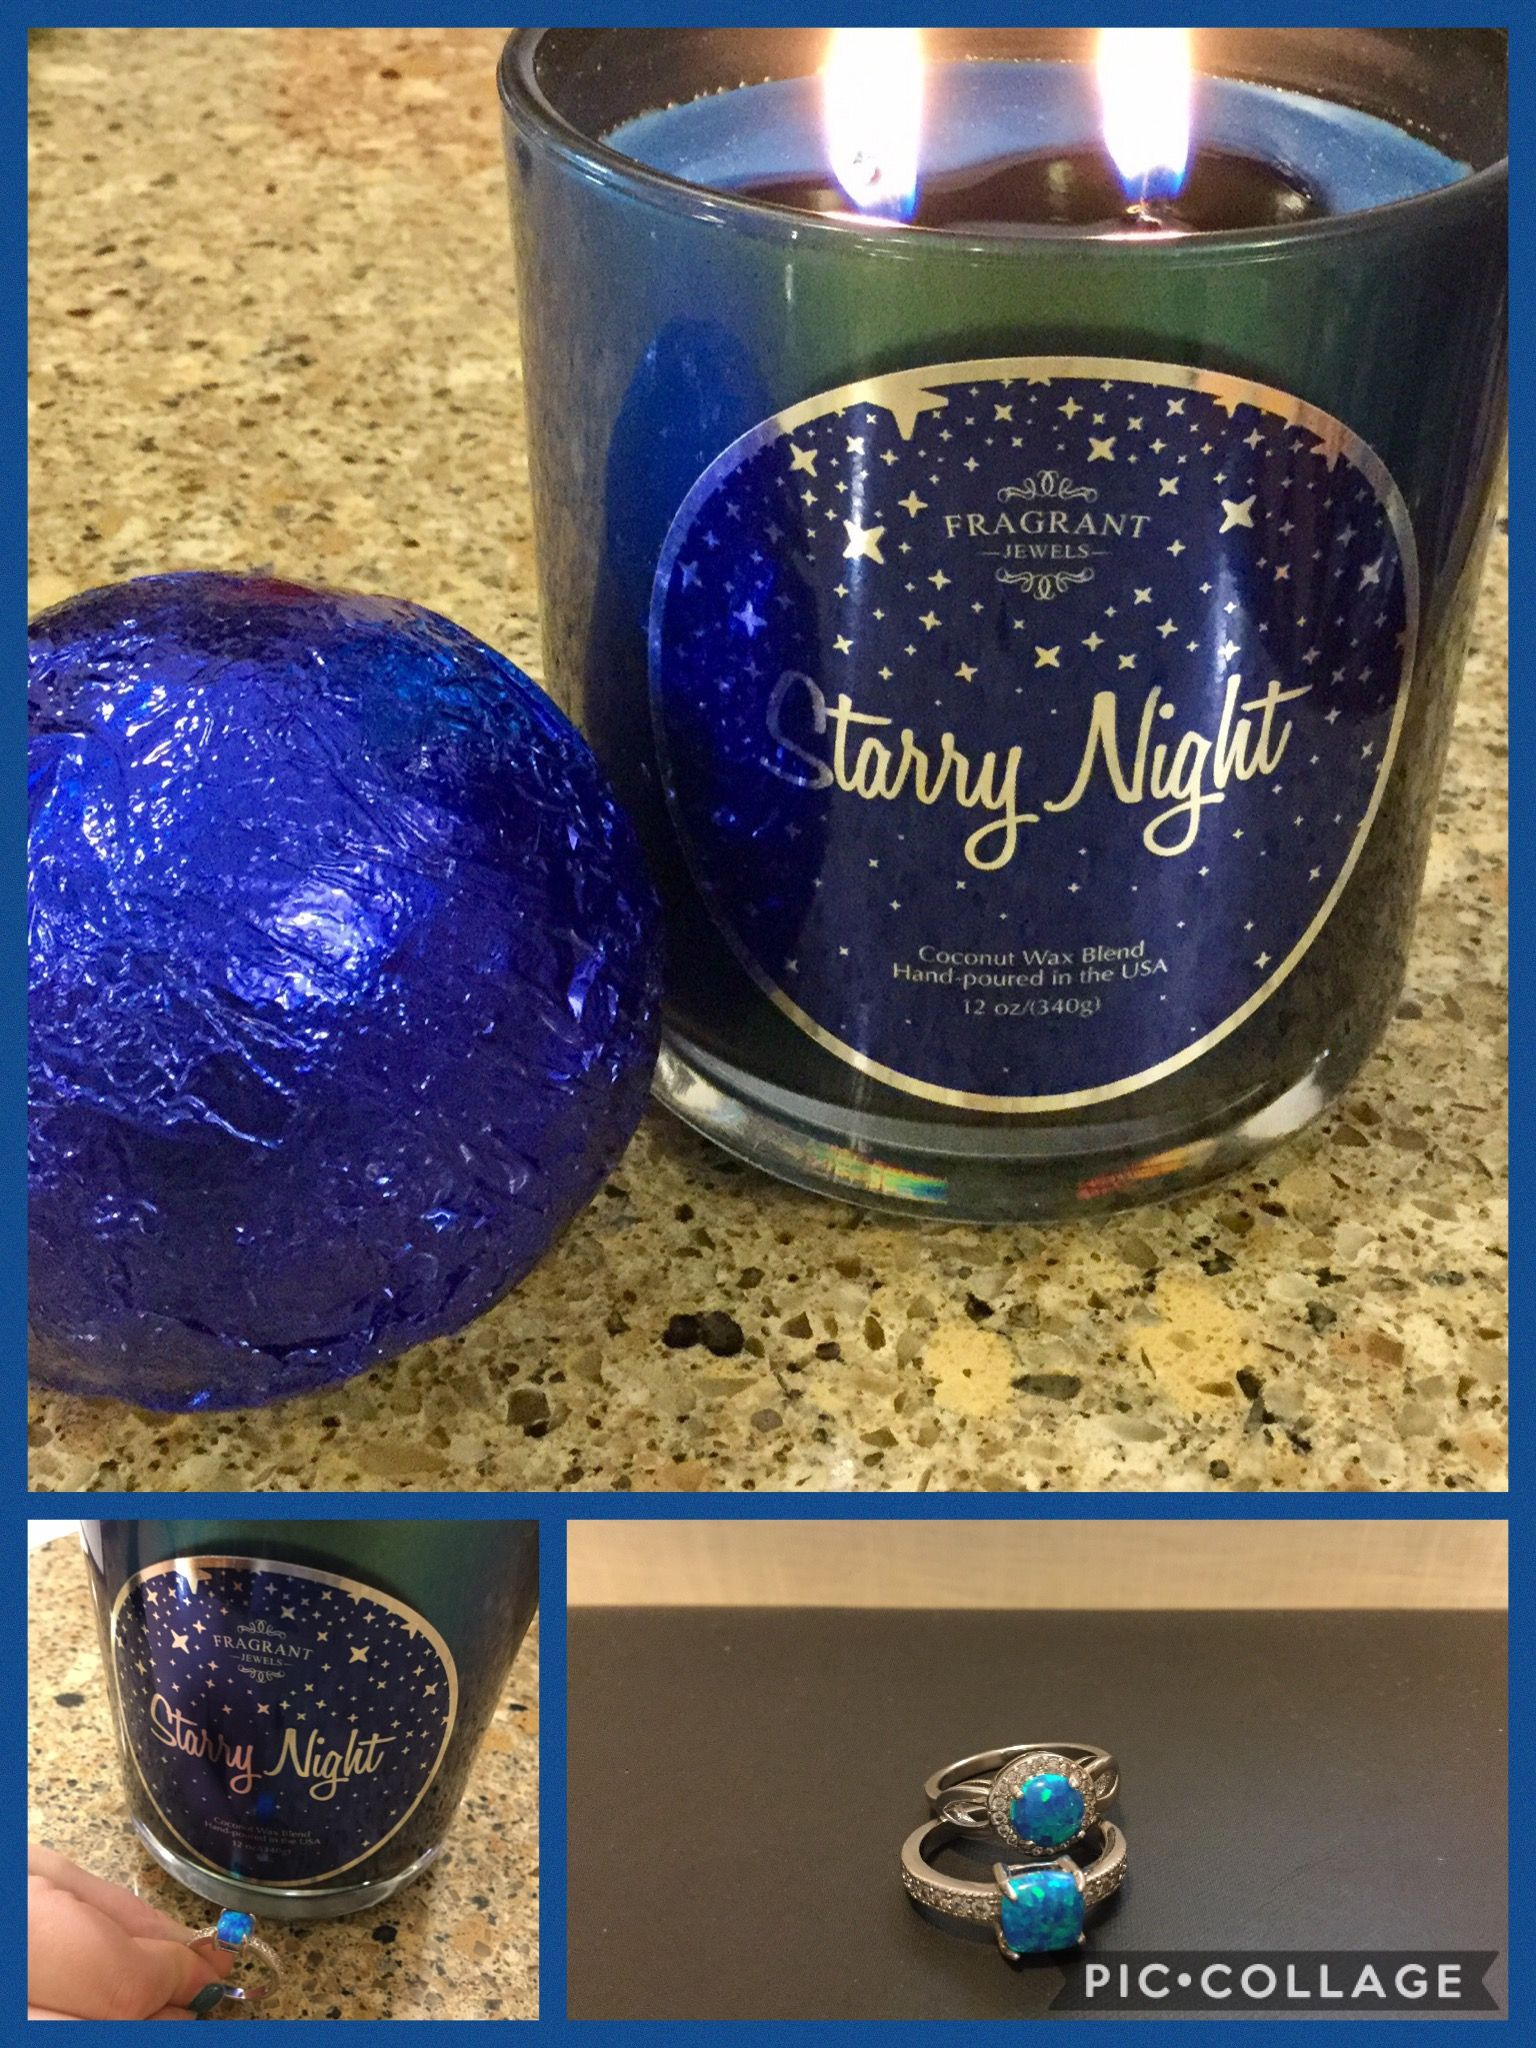 Delightful Starry Night Candle And Bath Bomb Set #fragrantjewels With Blue Opal Rings